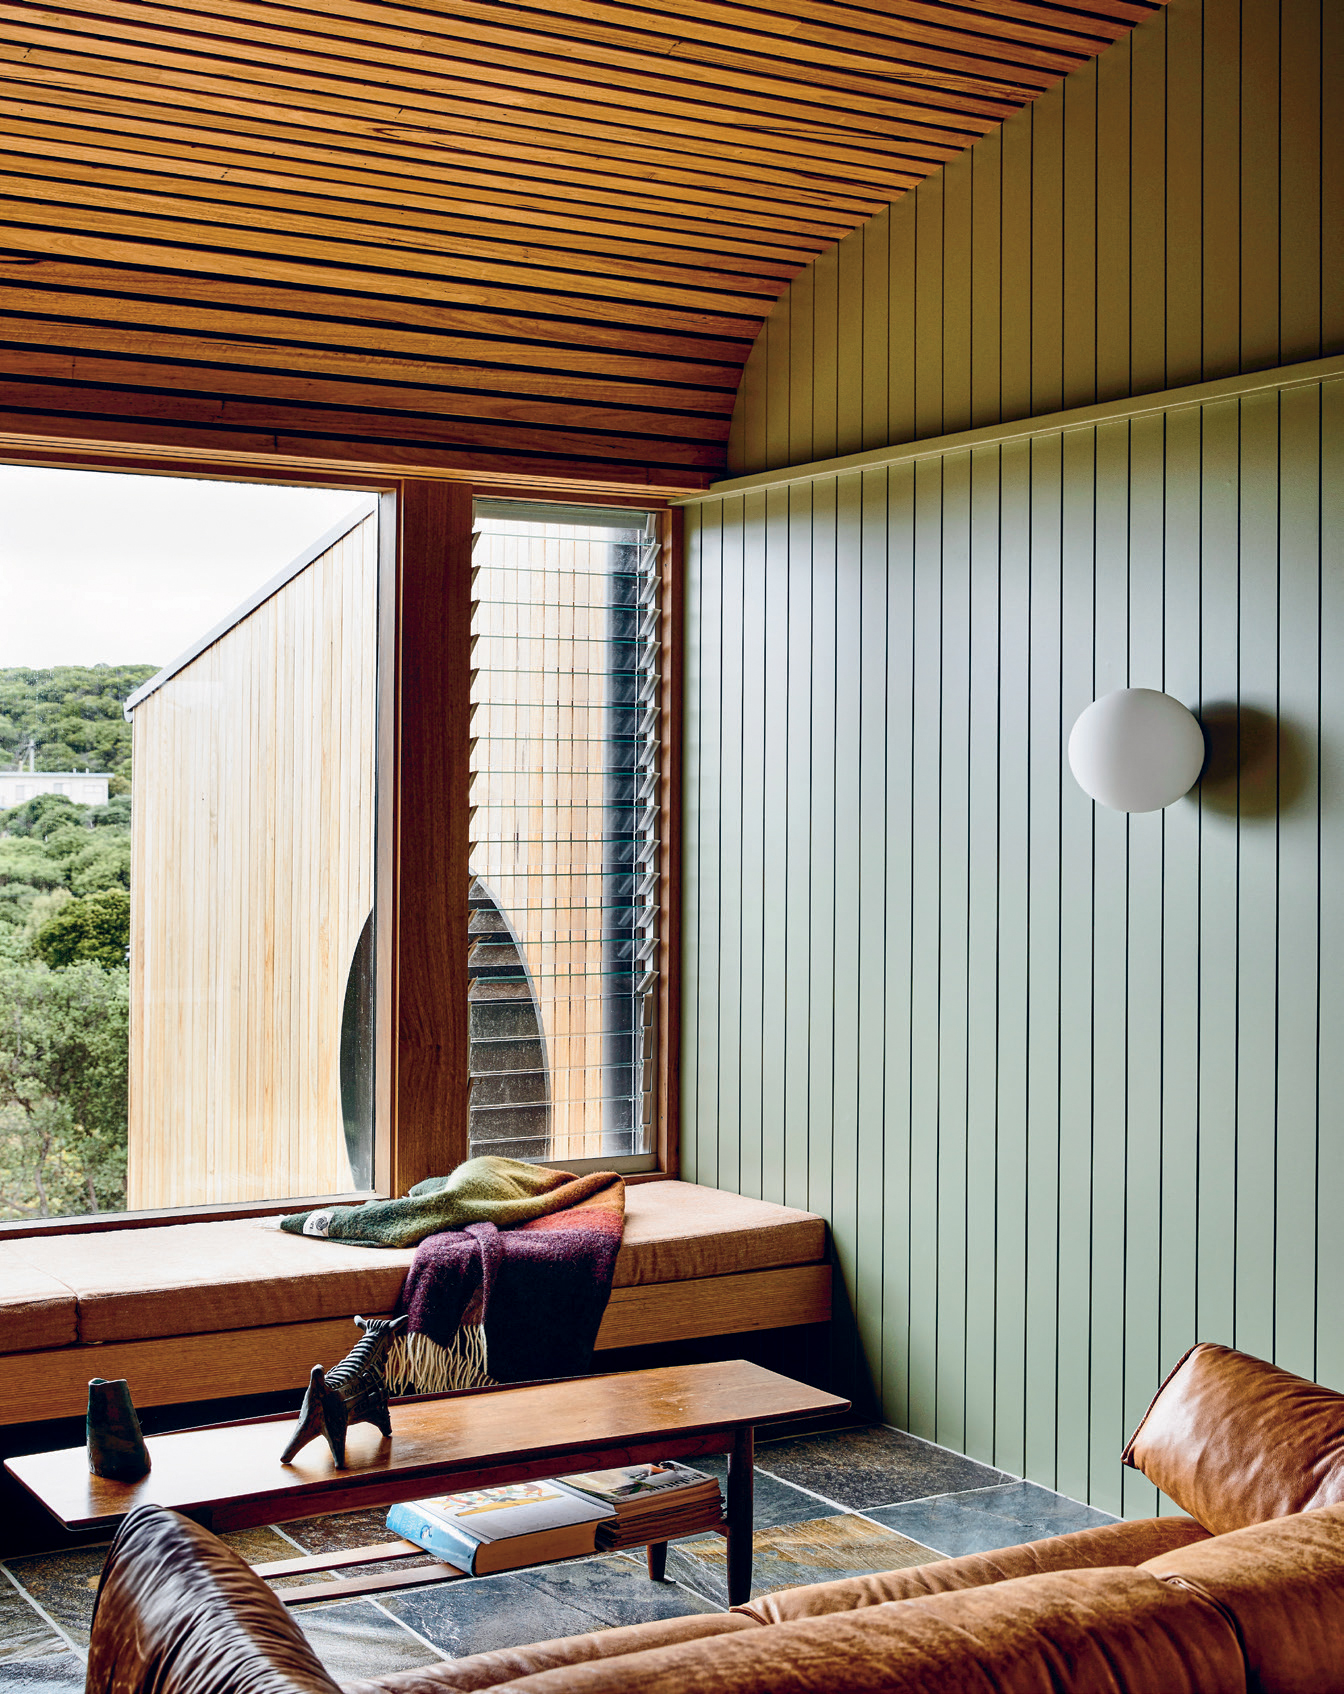 Timber-clad walls and ceilings achieve a sense of cohesion with the exterior, and bring warmth and robustness to the interiors.